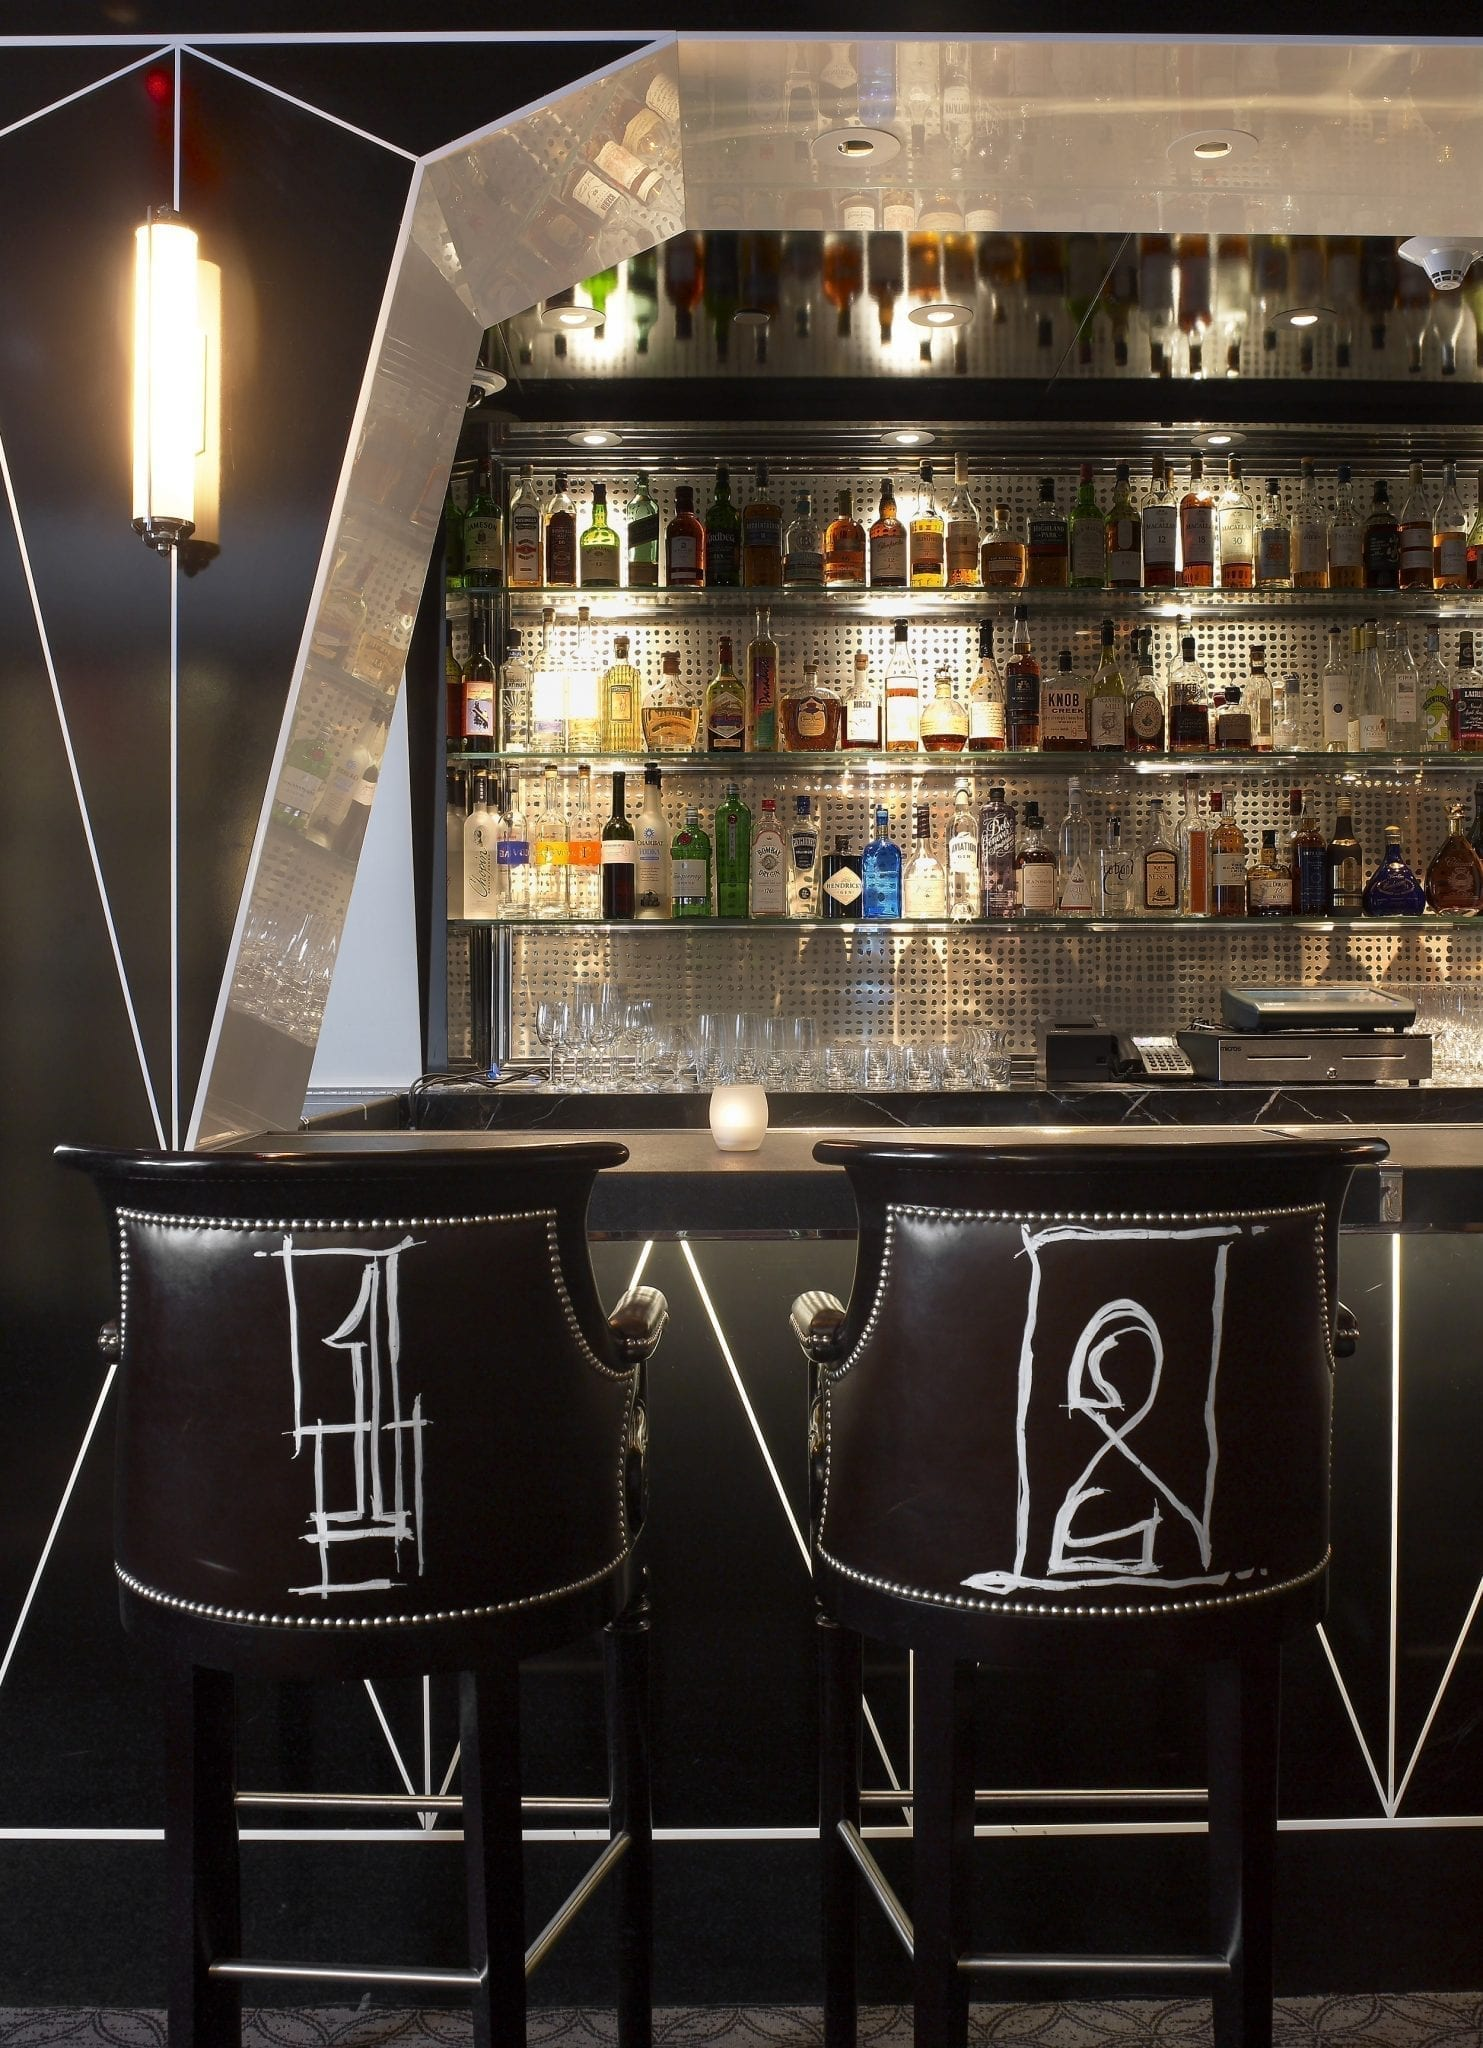 Two stylish bar stools in Bar Pleiades, with design by Jimmie Martin. White scrawls make up the deep brown upholstered back of each stool. In front, long clear shelving holds the bar's favorite drinks for mixing.